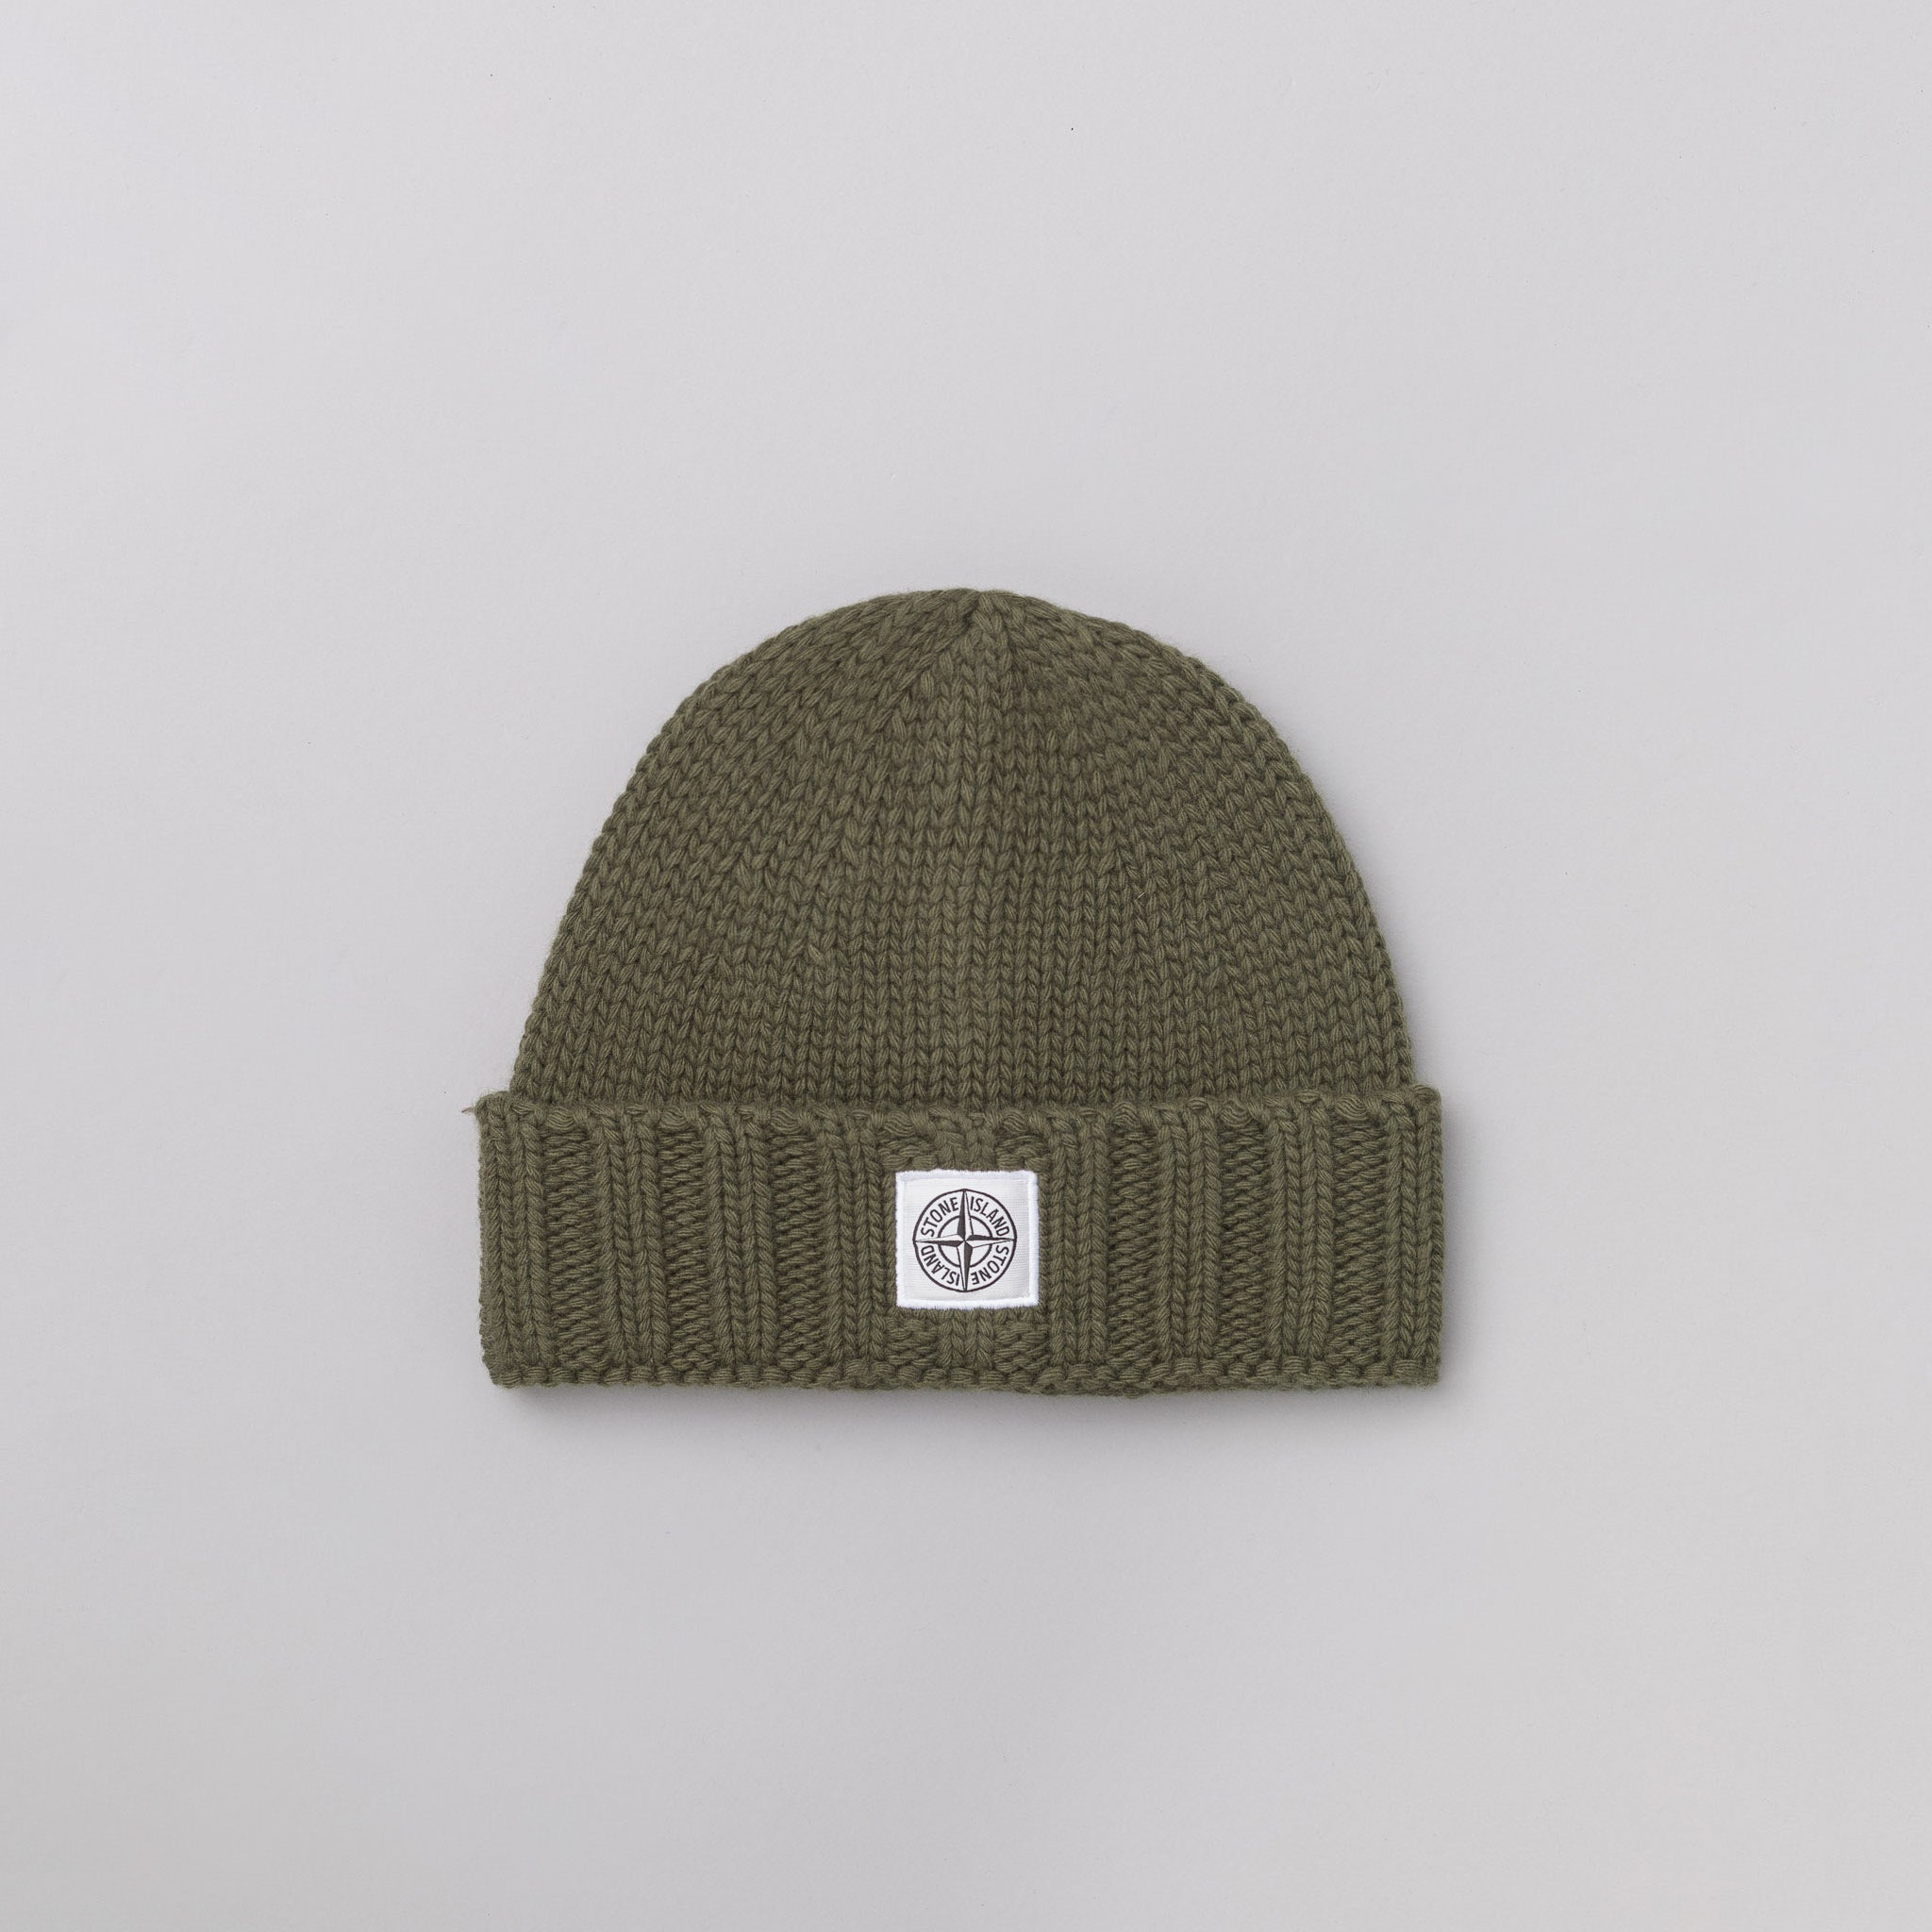 N07C1 Knit Logo Cap in Olive